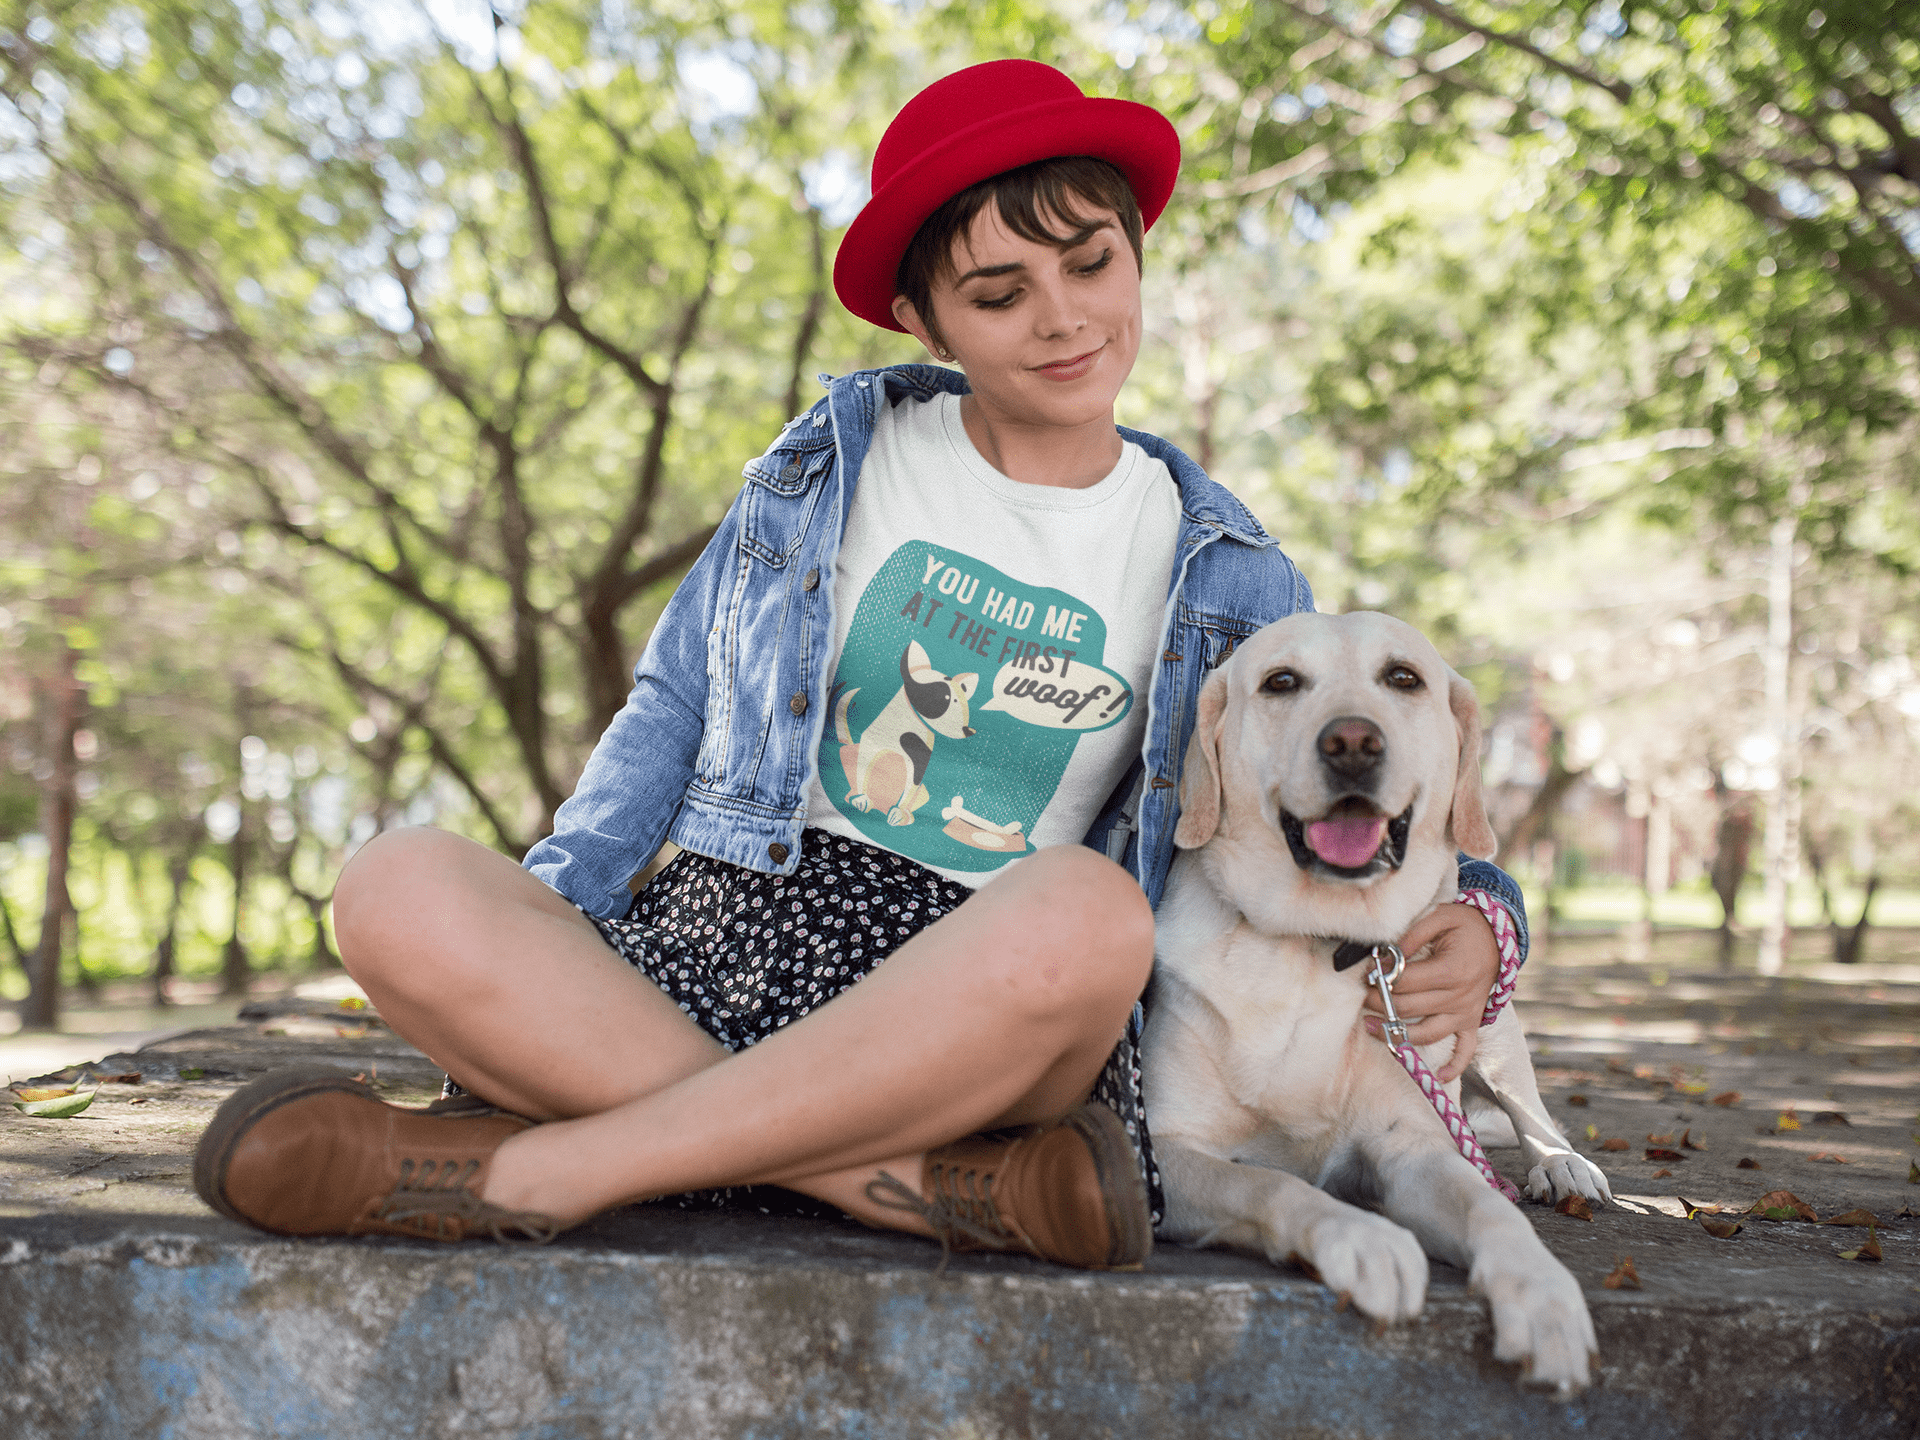 2018 Latest Trends in T-shirt Designs placeit 23